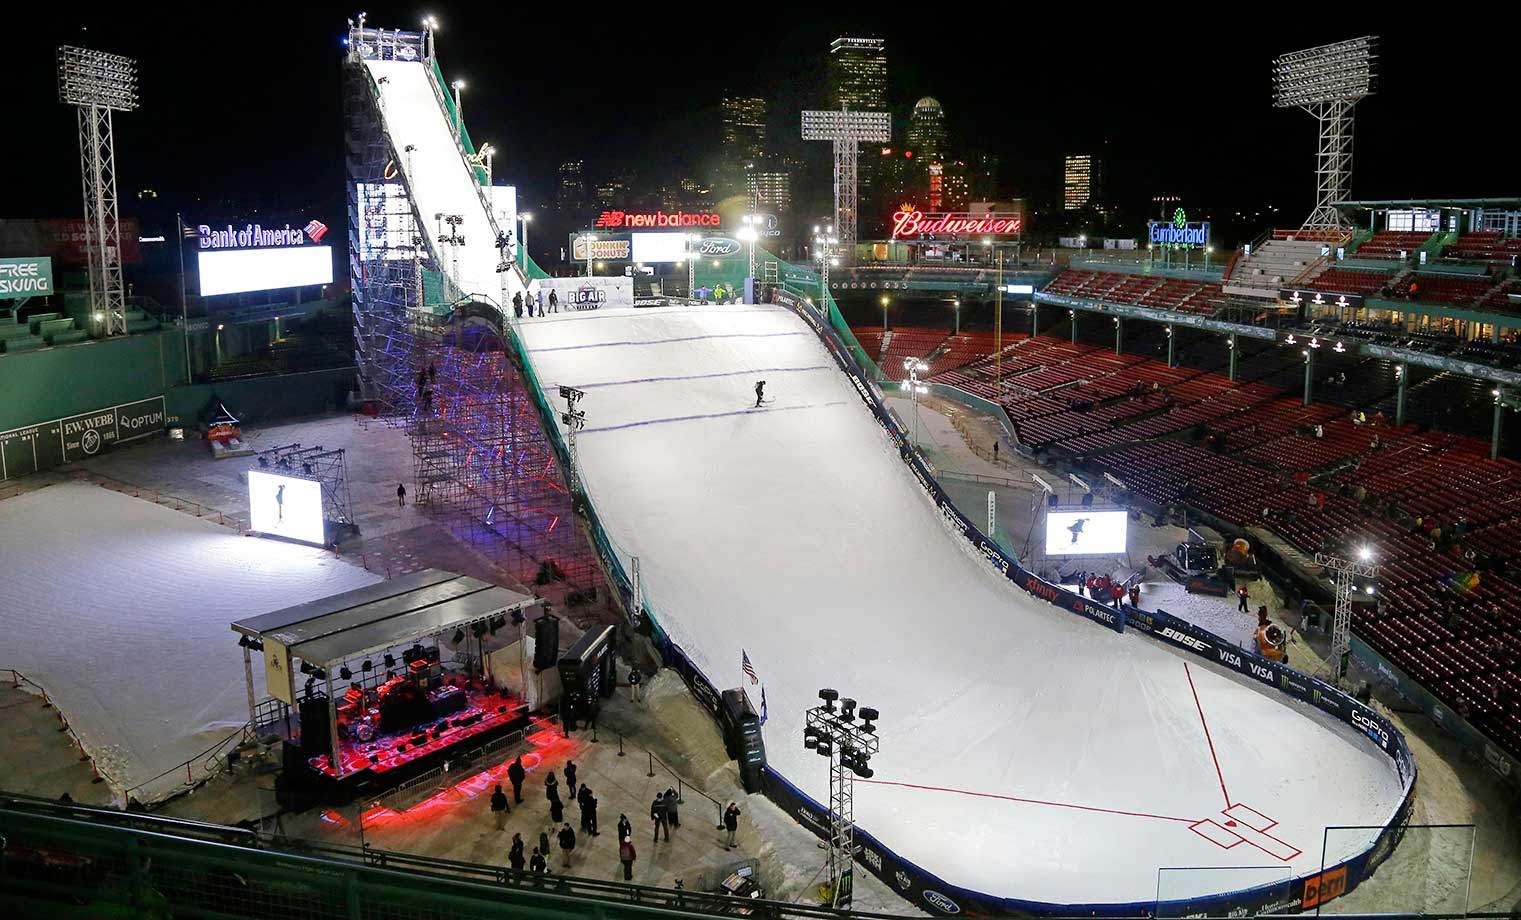 A worker paints a blue line on the ramp before the snowboarding competition of the Big Air at Fenway Park in Boston.